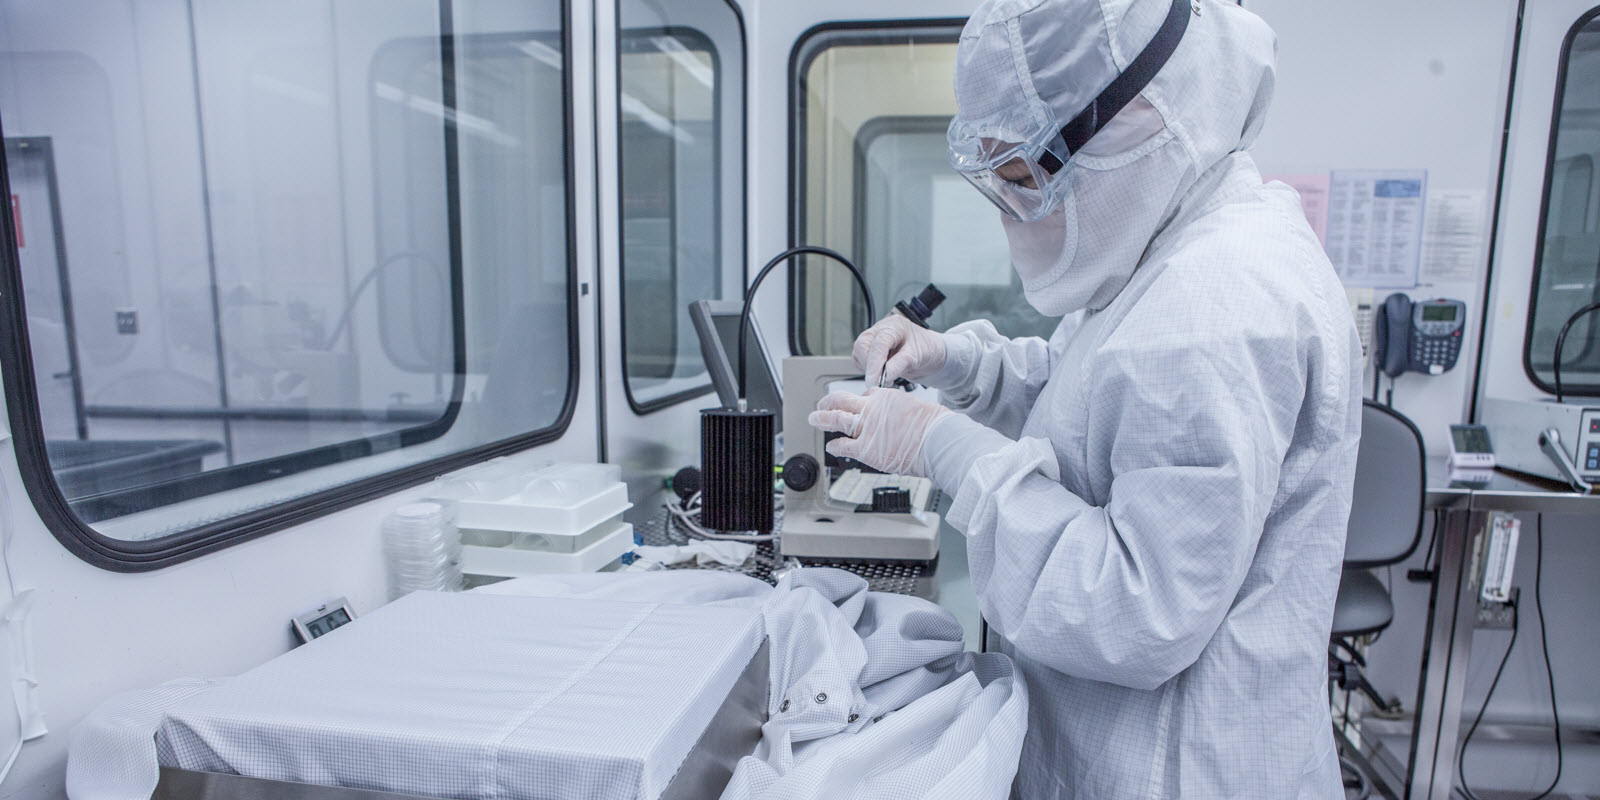 How Much Can Labs Save When Choosing Reusable Cleanroom Garments?